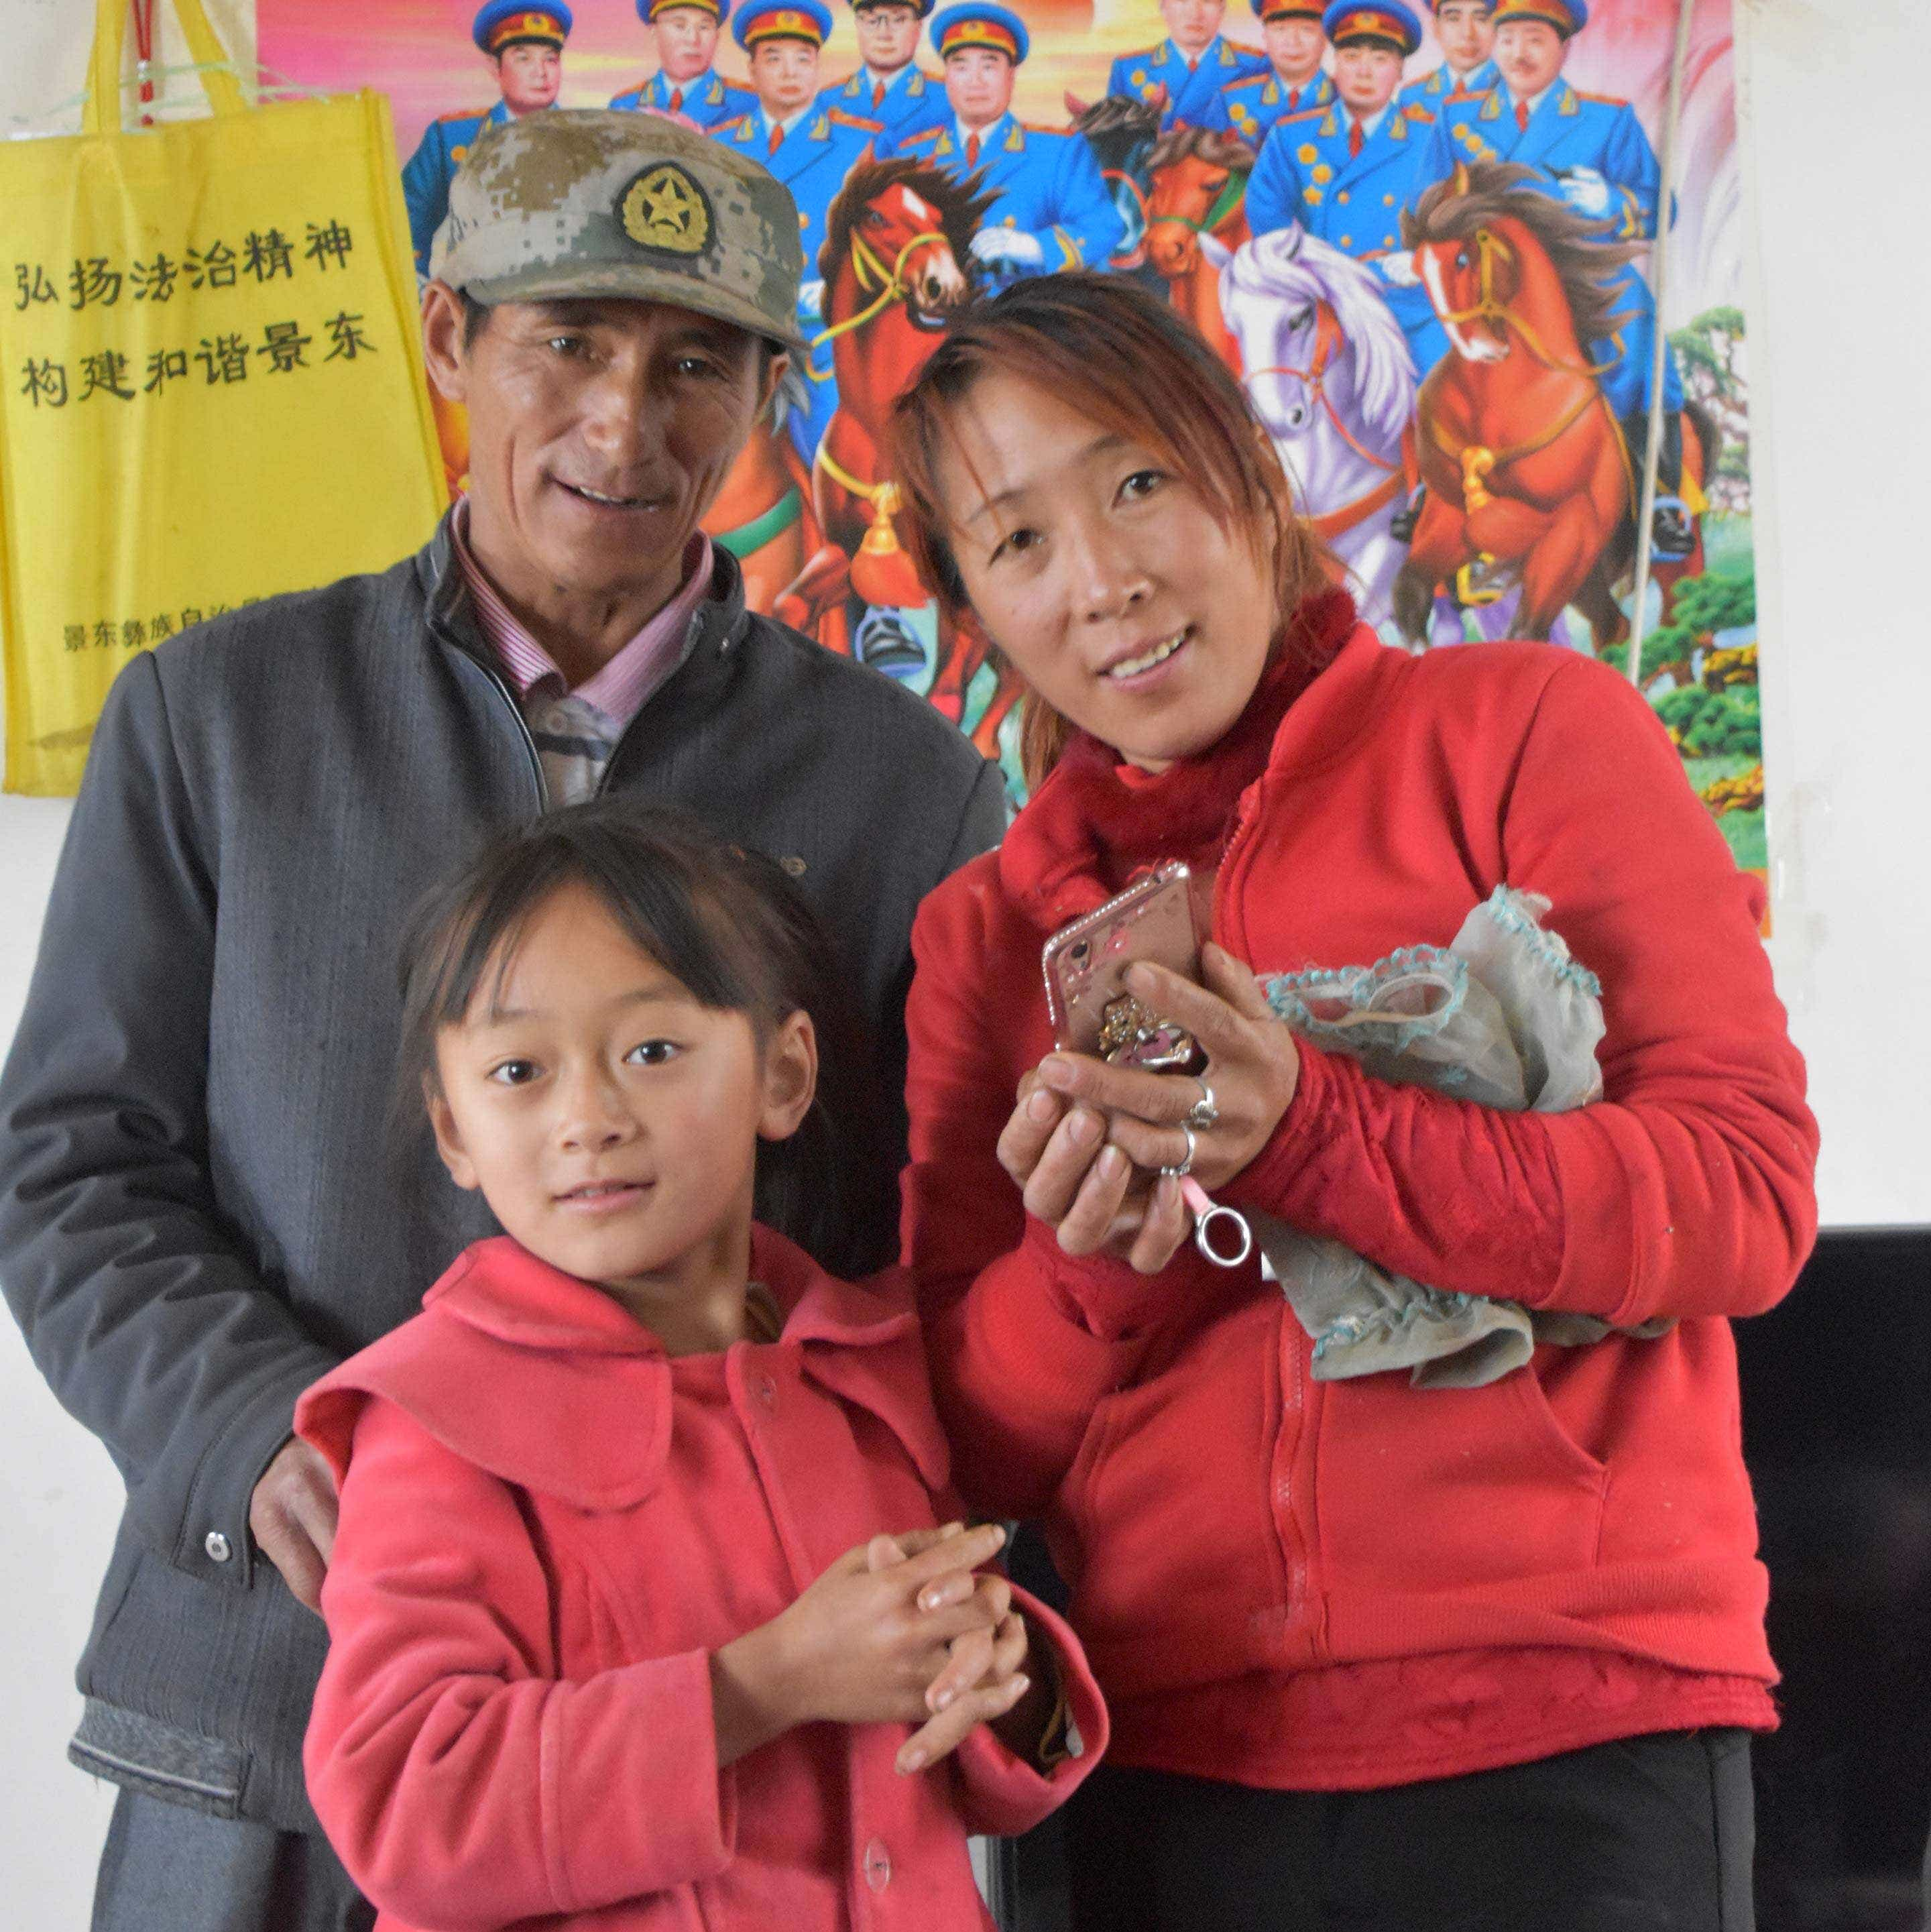 Mr. Li with his daughter and granddaughter